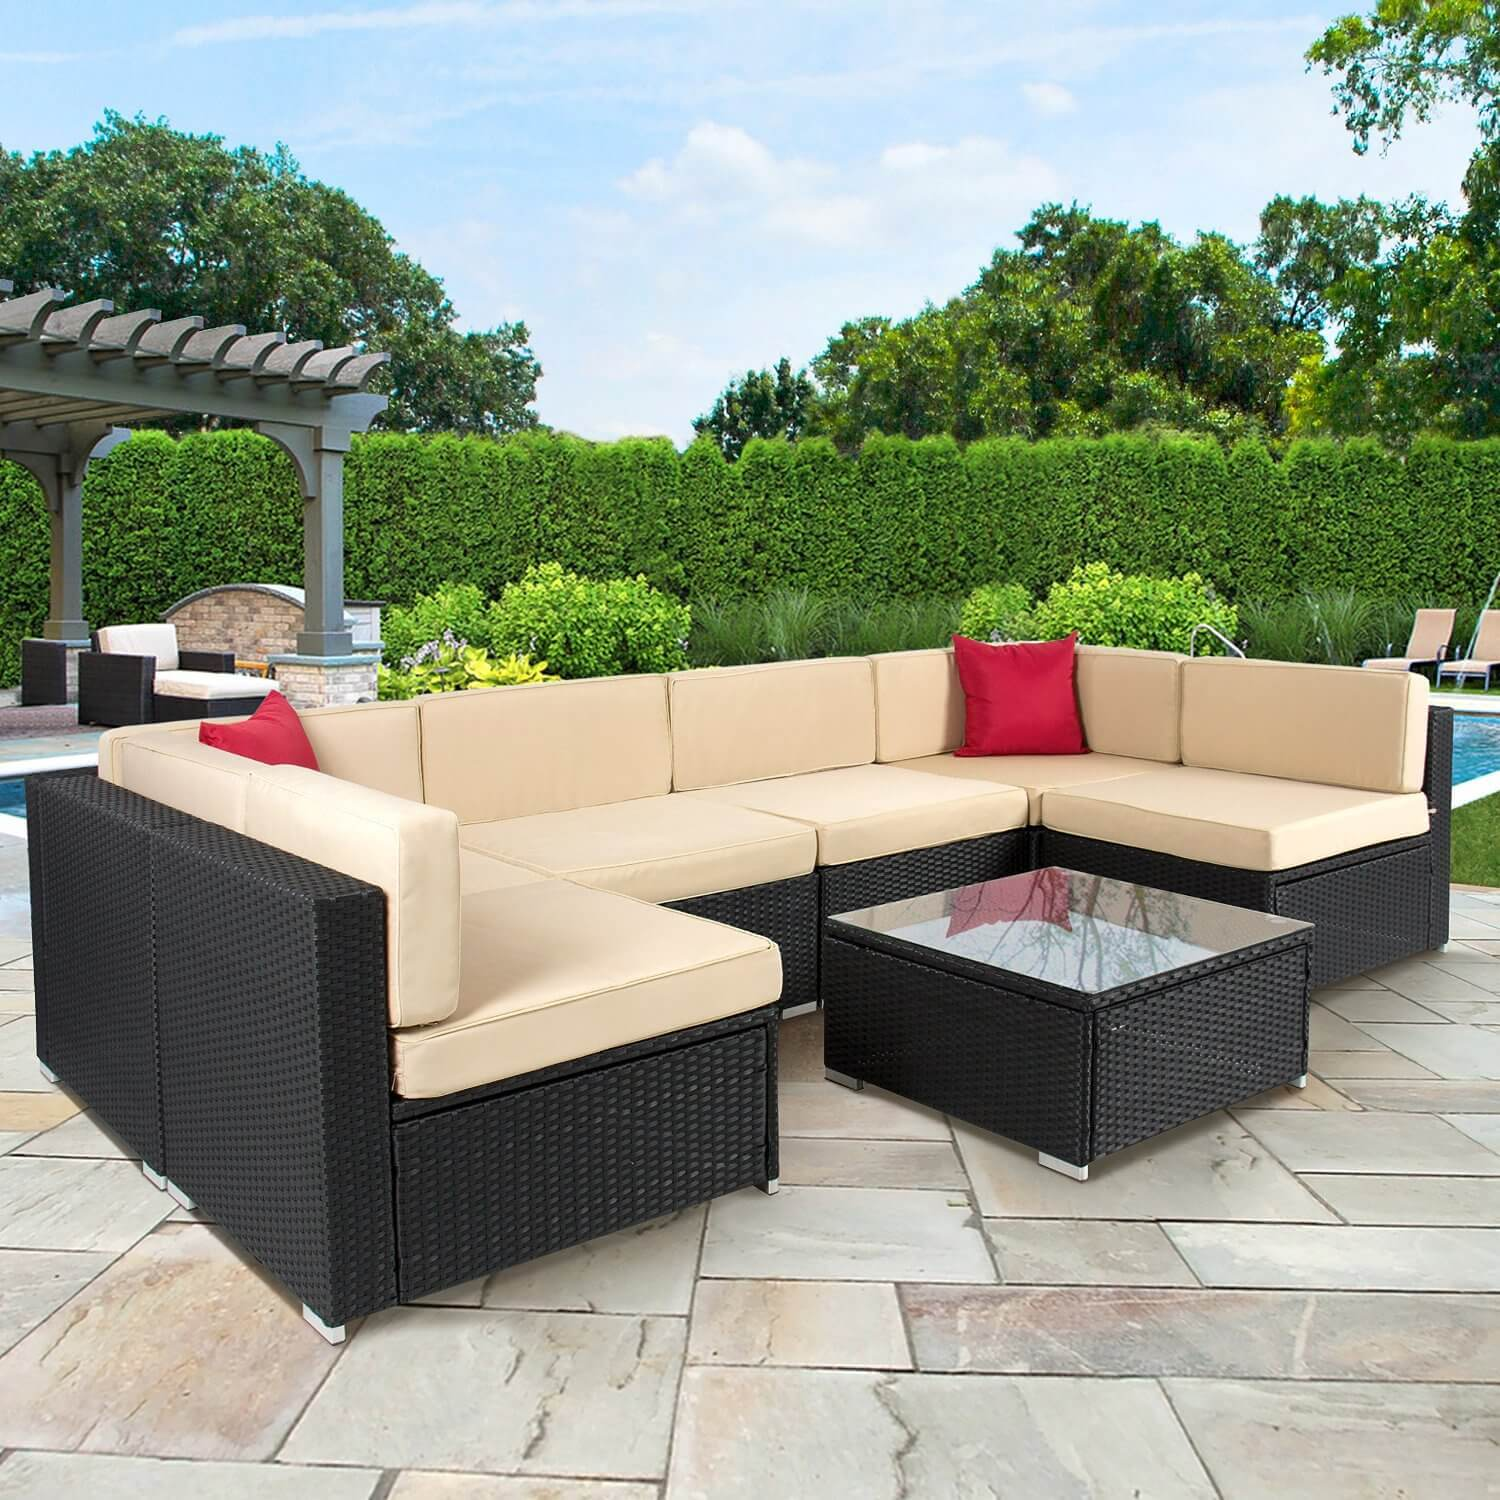 This patio set looks good enough to be a couch, except it was built to be outside and is durable enough to withstand it. The sectional outdoor sofa and matching table is mid priced and fantastic to look at.